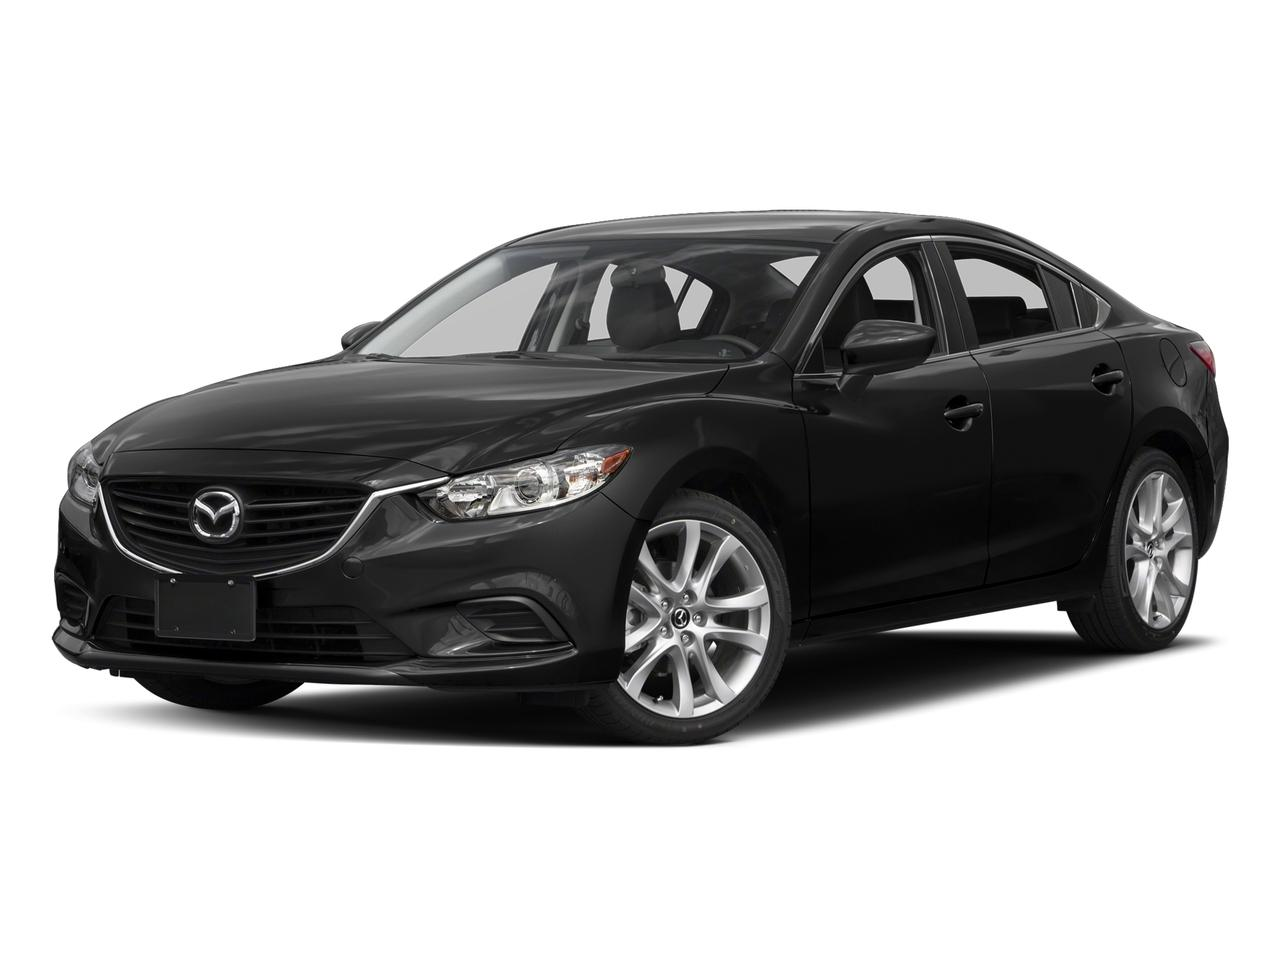 2016 Mazda Mazda6 Vehicle Photo in Smyrna, DE 19977